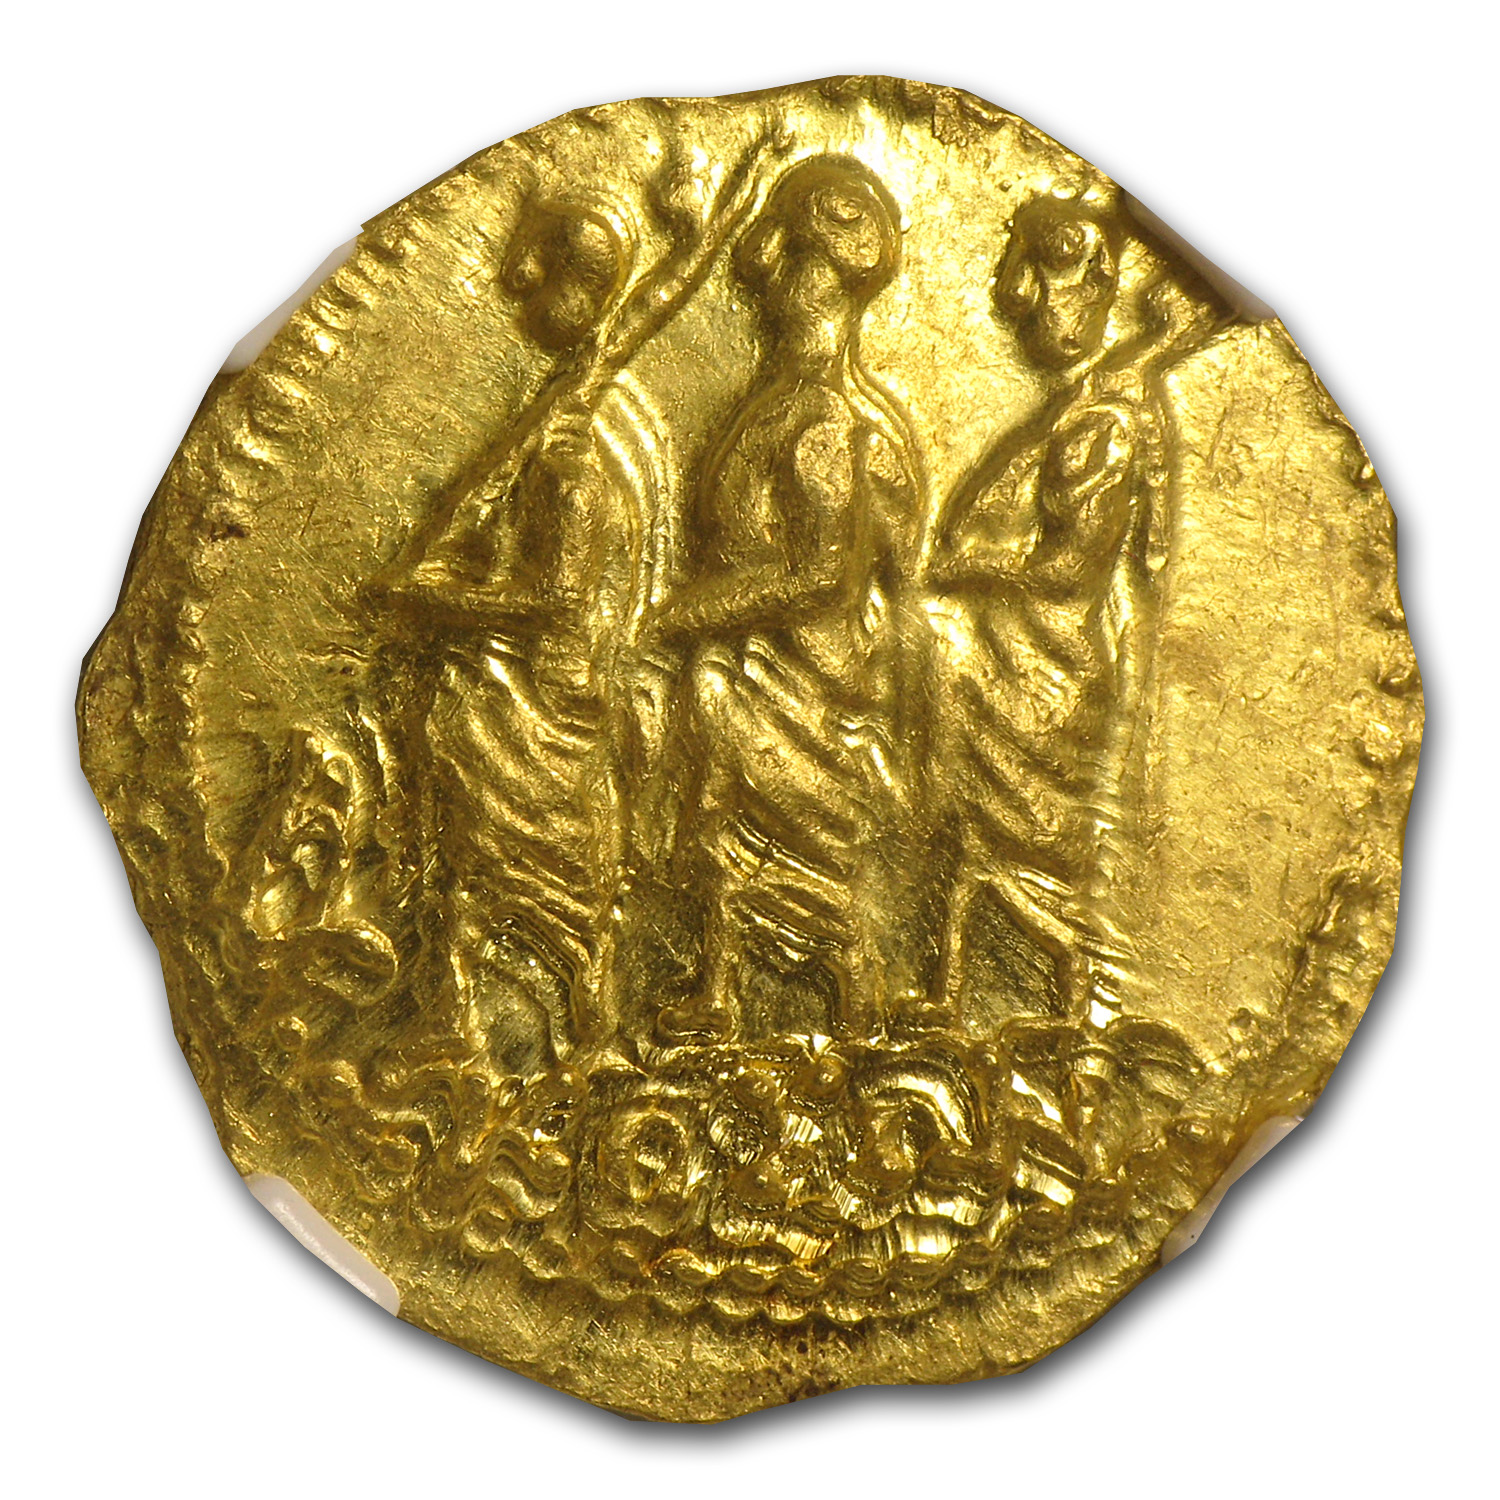 Thracian/Scythian Gold Stater w/Monogram MS NGC (1st Century BC)